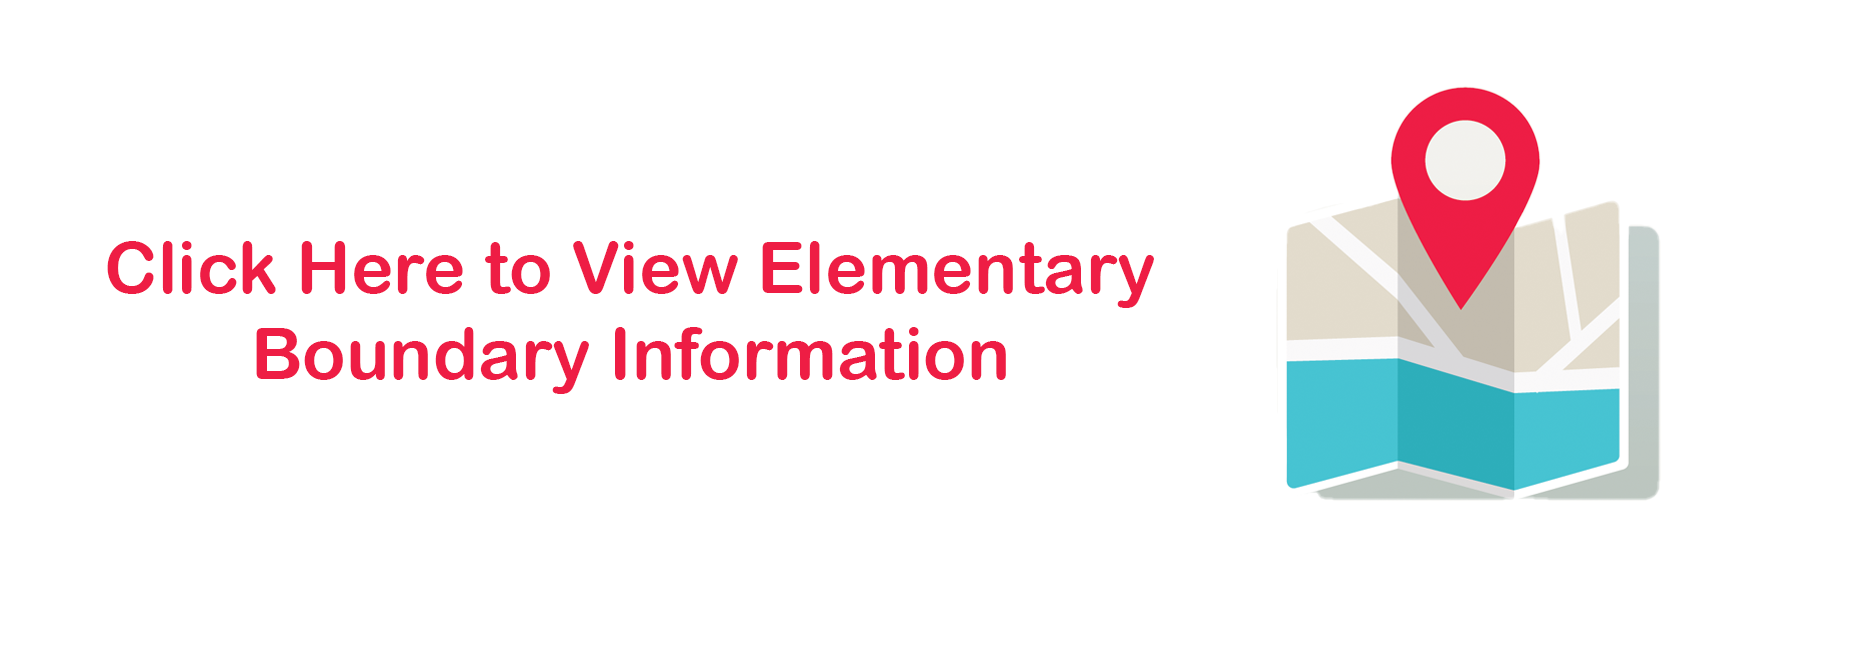 Click here to view elementary boundary information